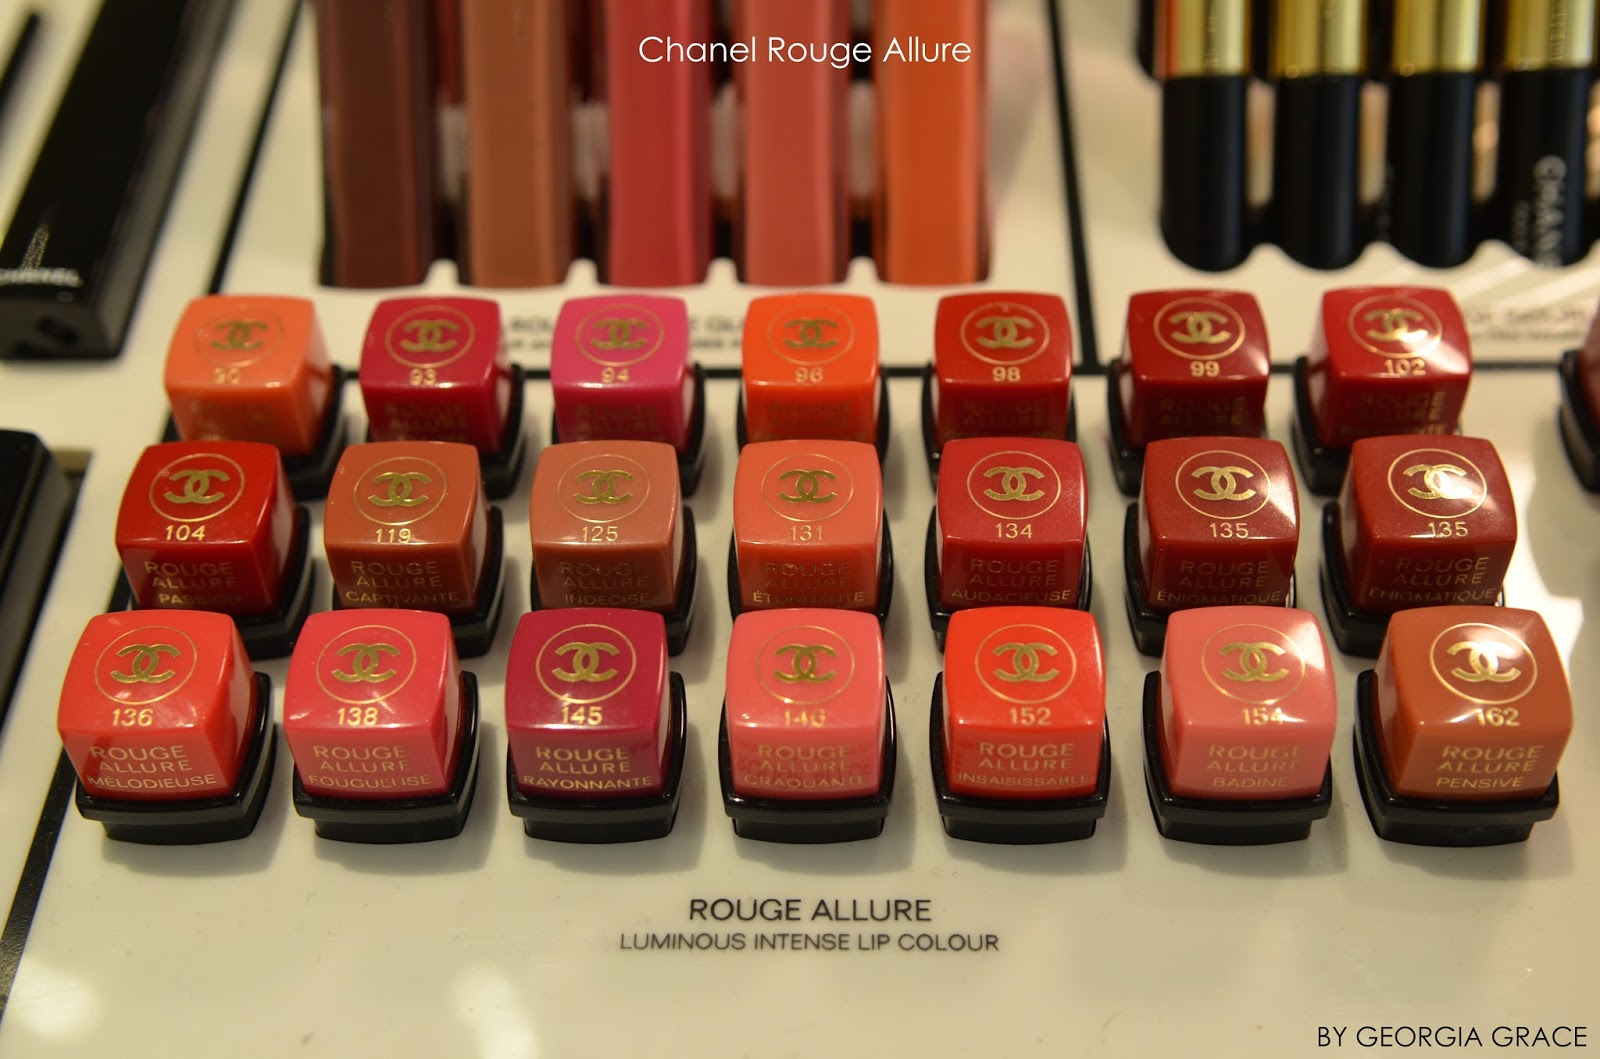 Chanel Rouge Allure Swatches All Shades